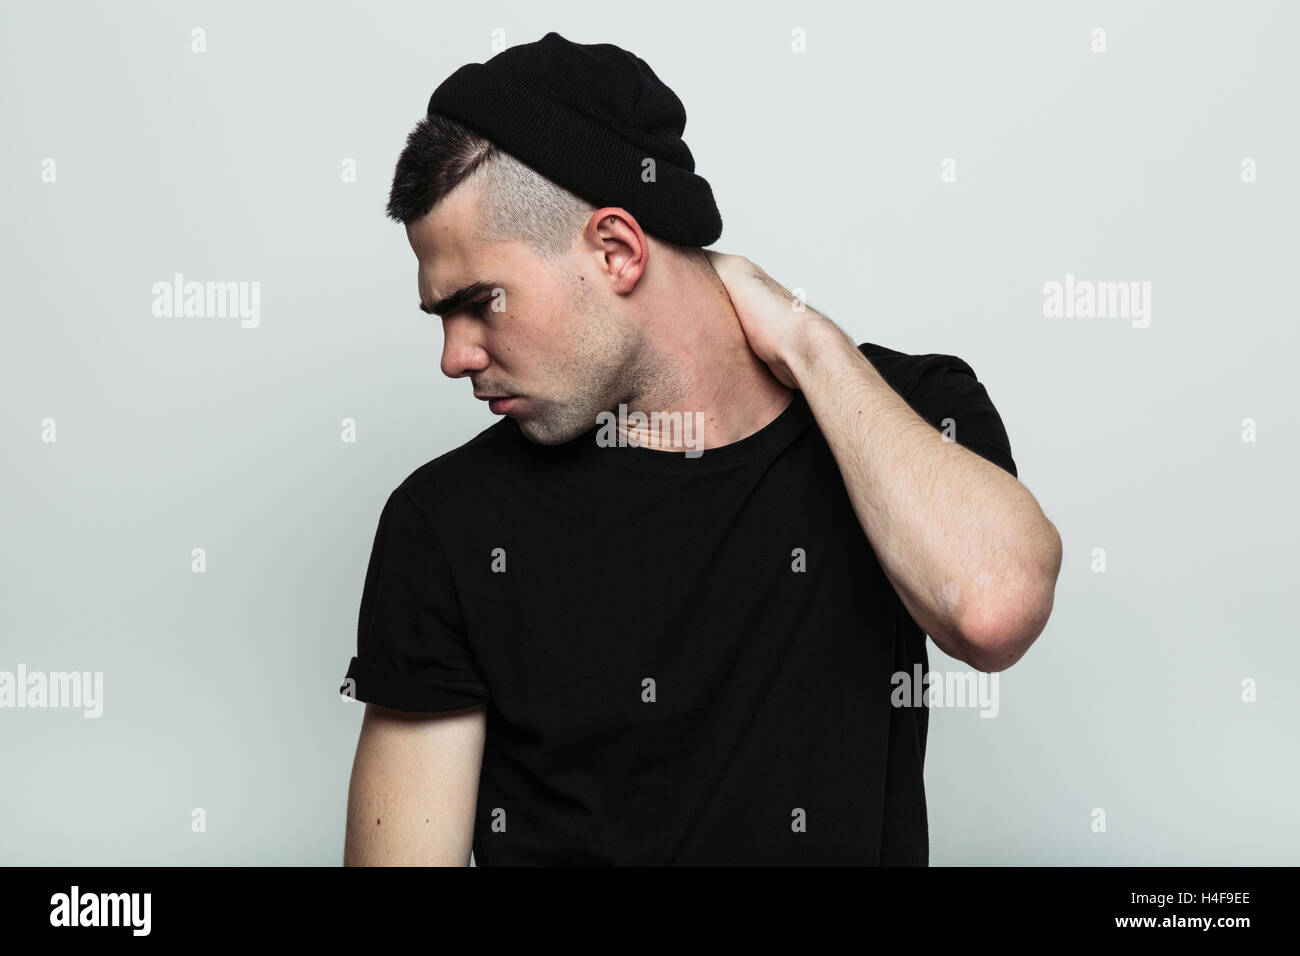 Portrait of man turned away with hand on neck Stock Photo